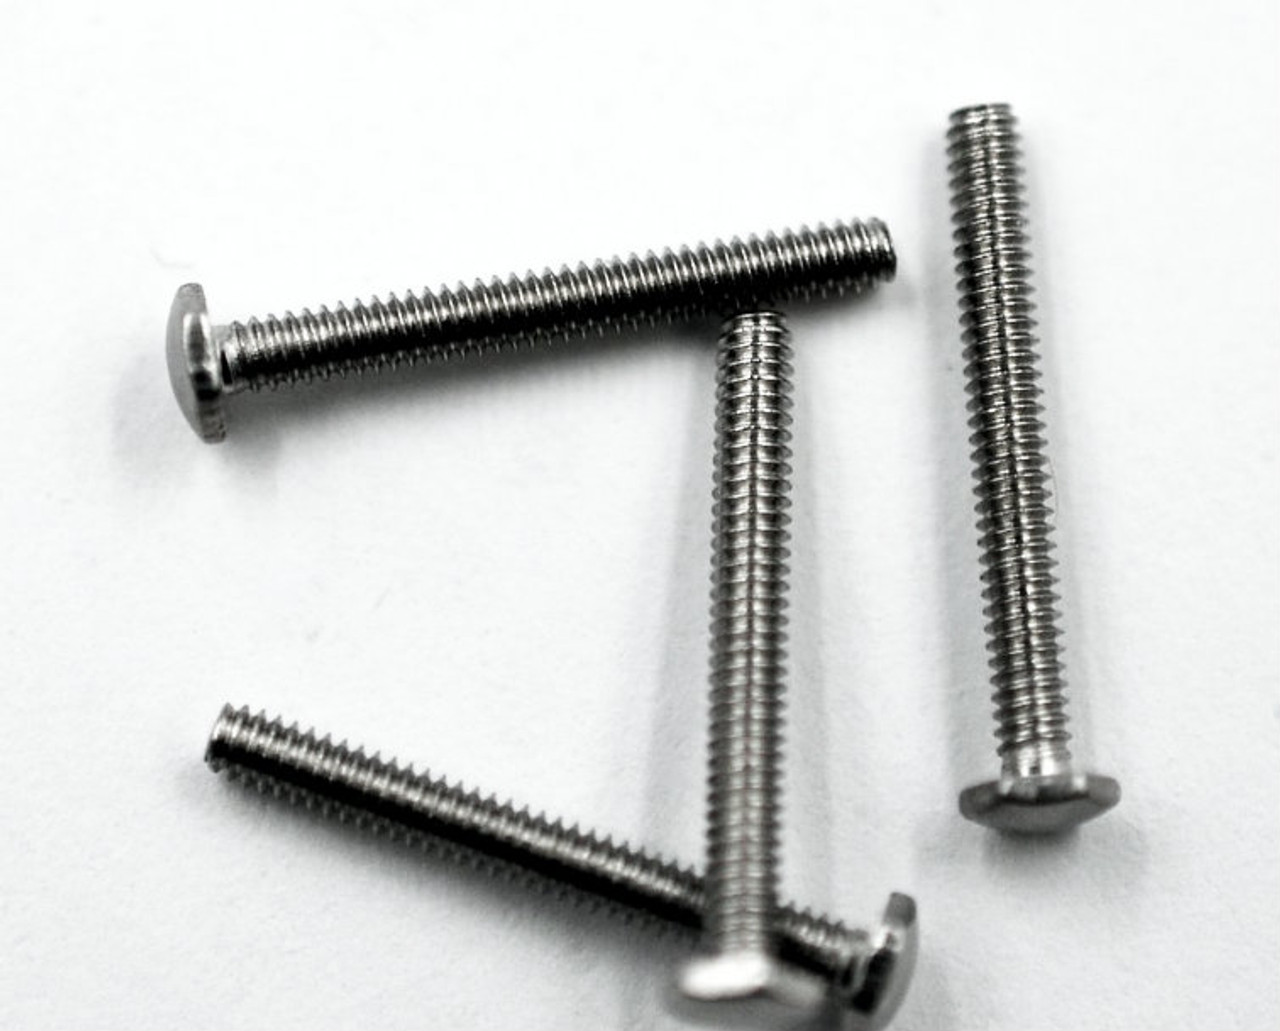 "Machine Screw Hex head, thread M1.4 pitch .25mm (thread also called 1.40UNM) head (ACF) measurement 2.5mm, Length shank 11.7mm and overall length is 12.5mm material Stainless steel, price for 100 pieces. Finish color natural stainless steel ""silver"" and polished.  The screw head has a slight doom and is polished"